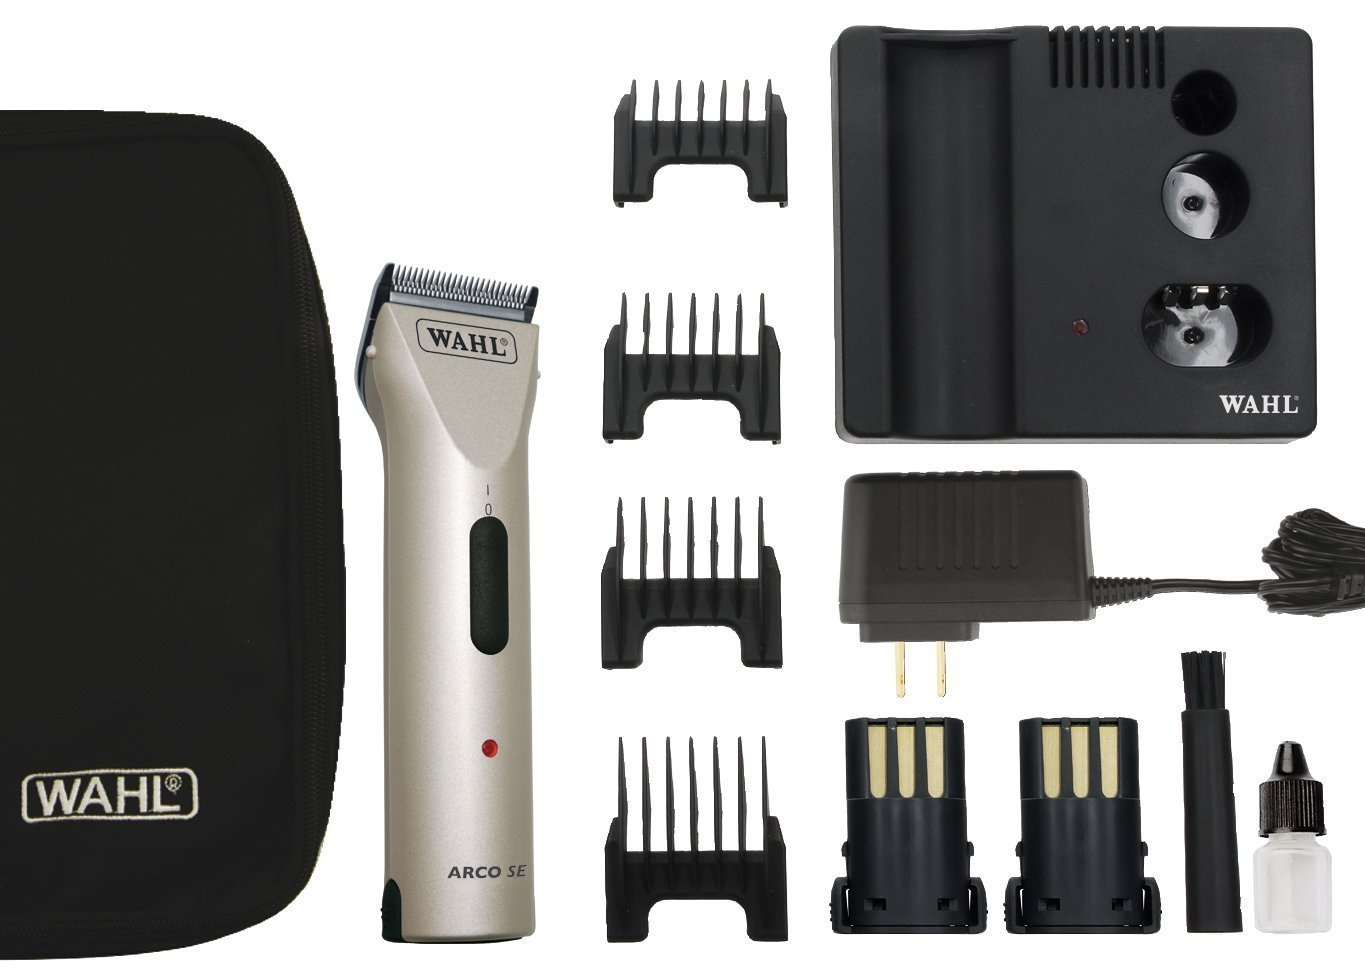 Wahl Professional Animal Powerful Motor ARCO Cordless Clipper Kit with bonus Blade Brush included (Chrome)